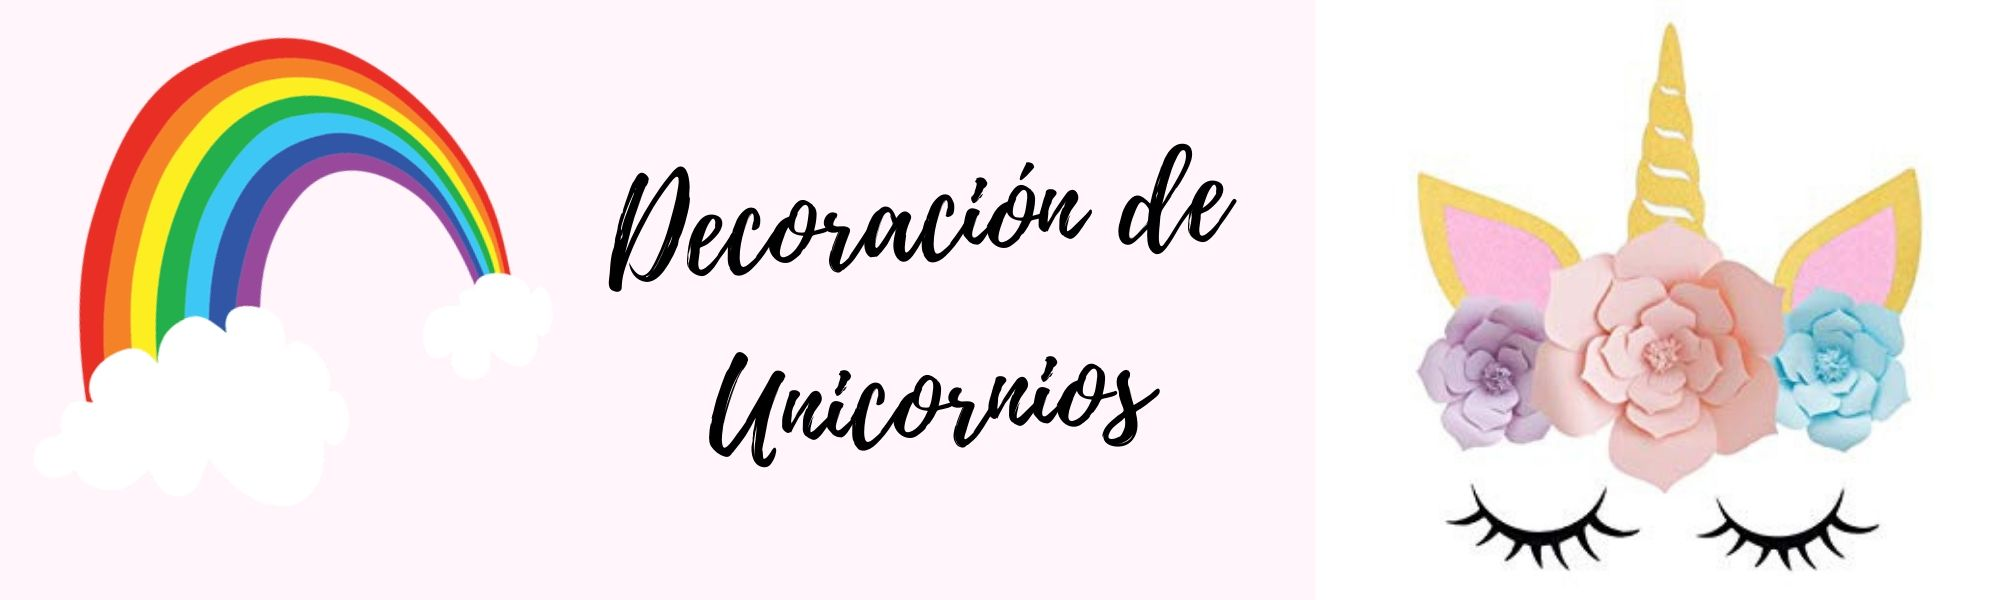 decoracion unicornio